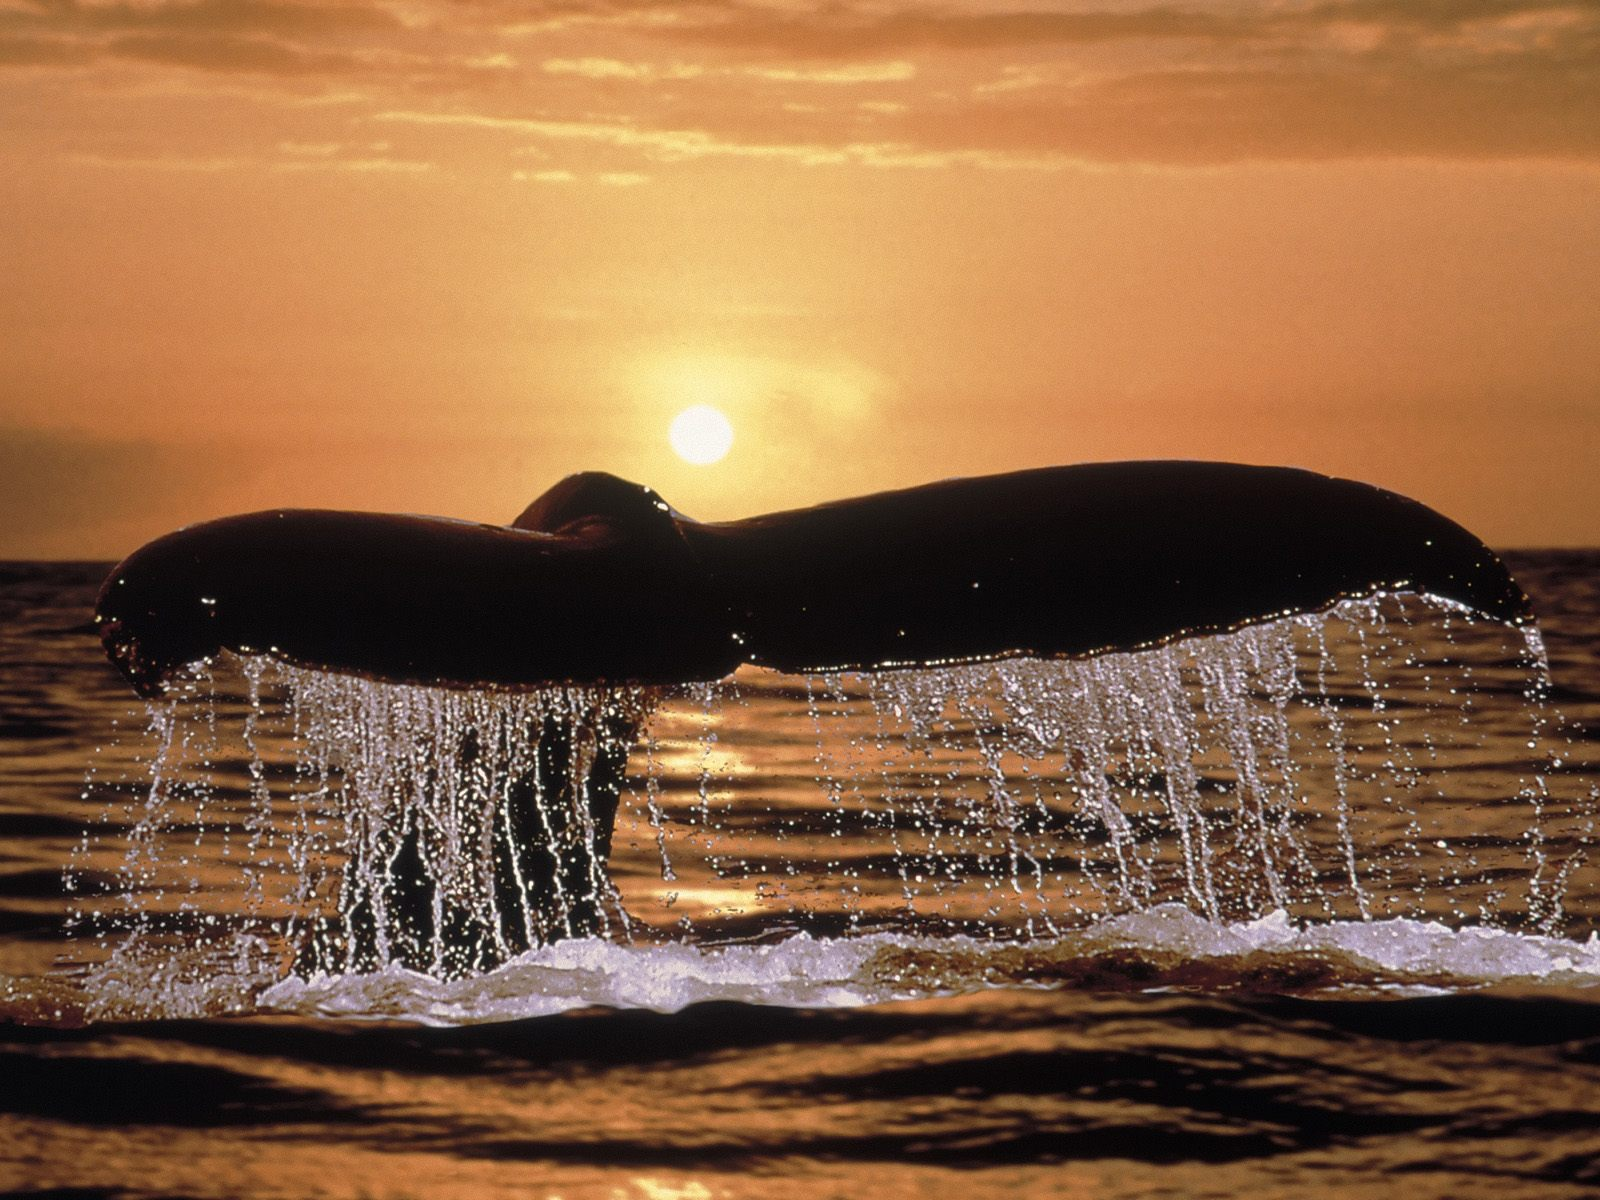 Humpback Whale Tail   Ocean Life Photography Desktop Wallpapers 1600x1200